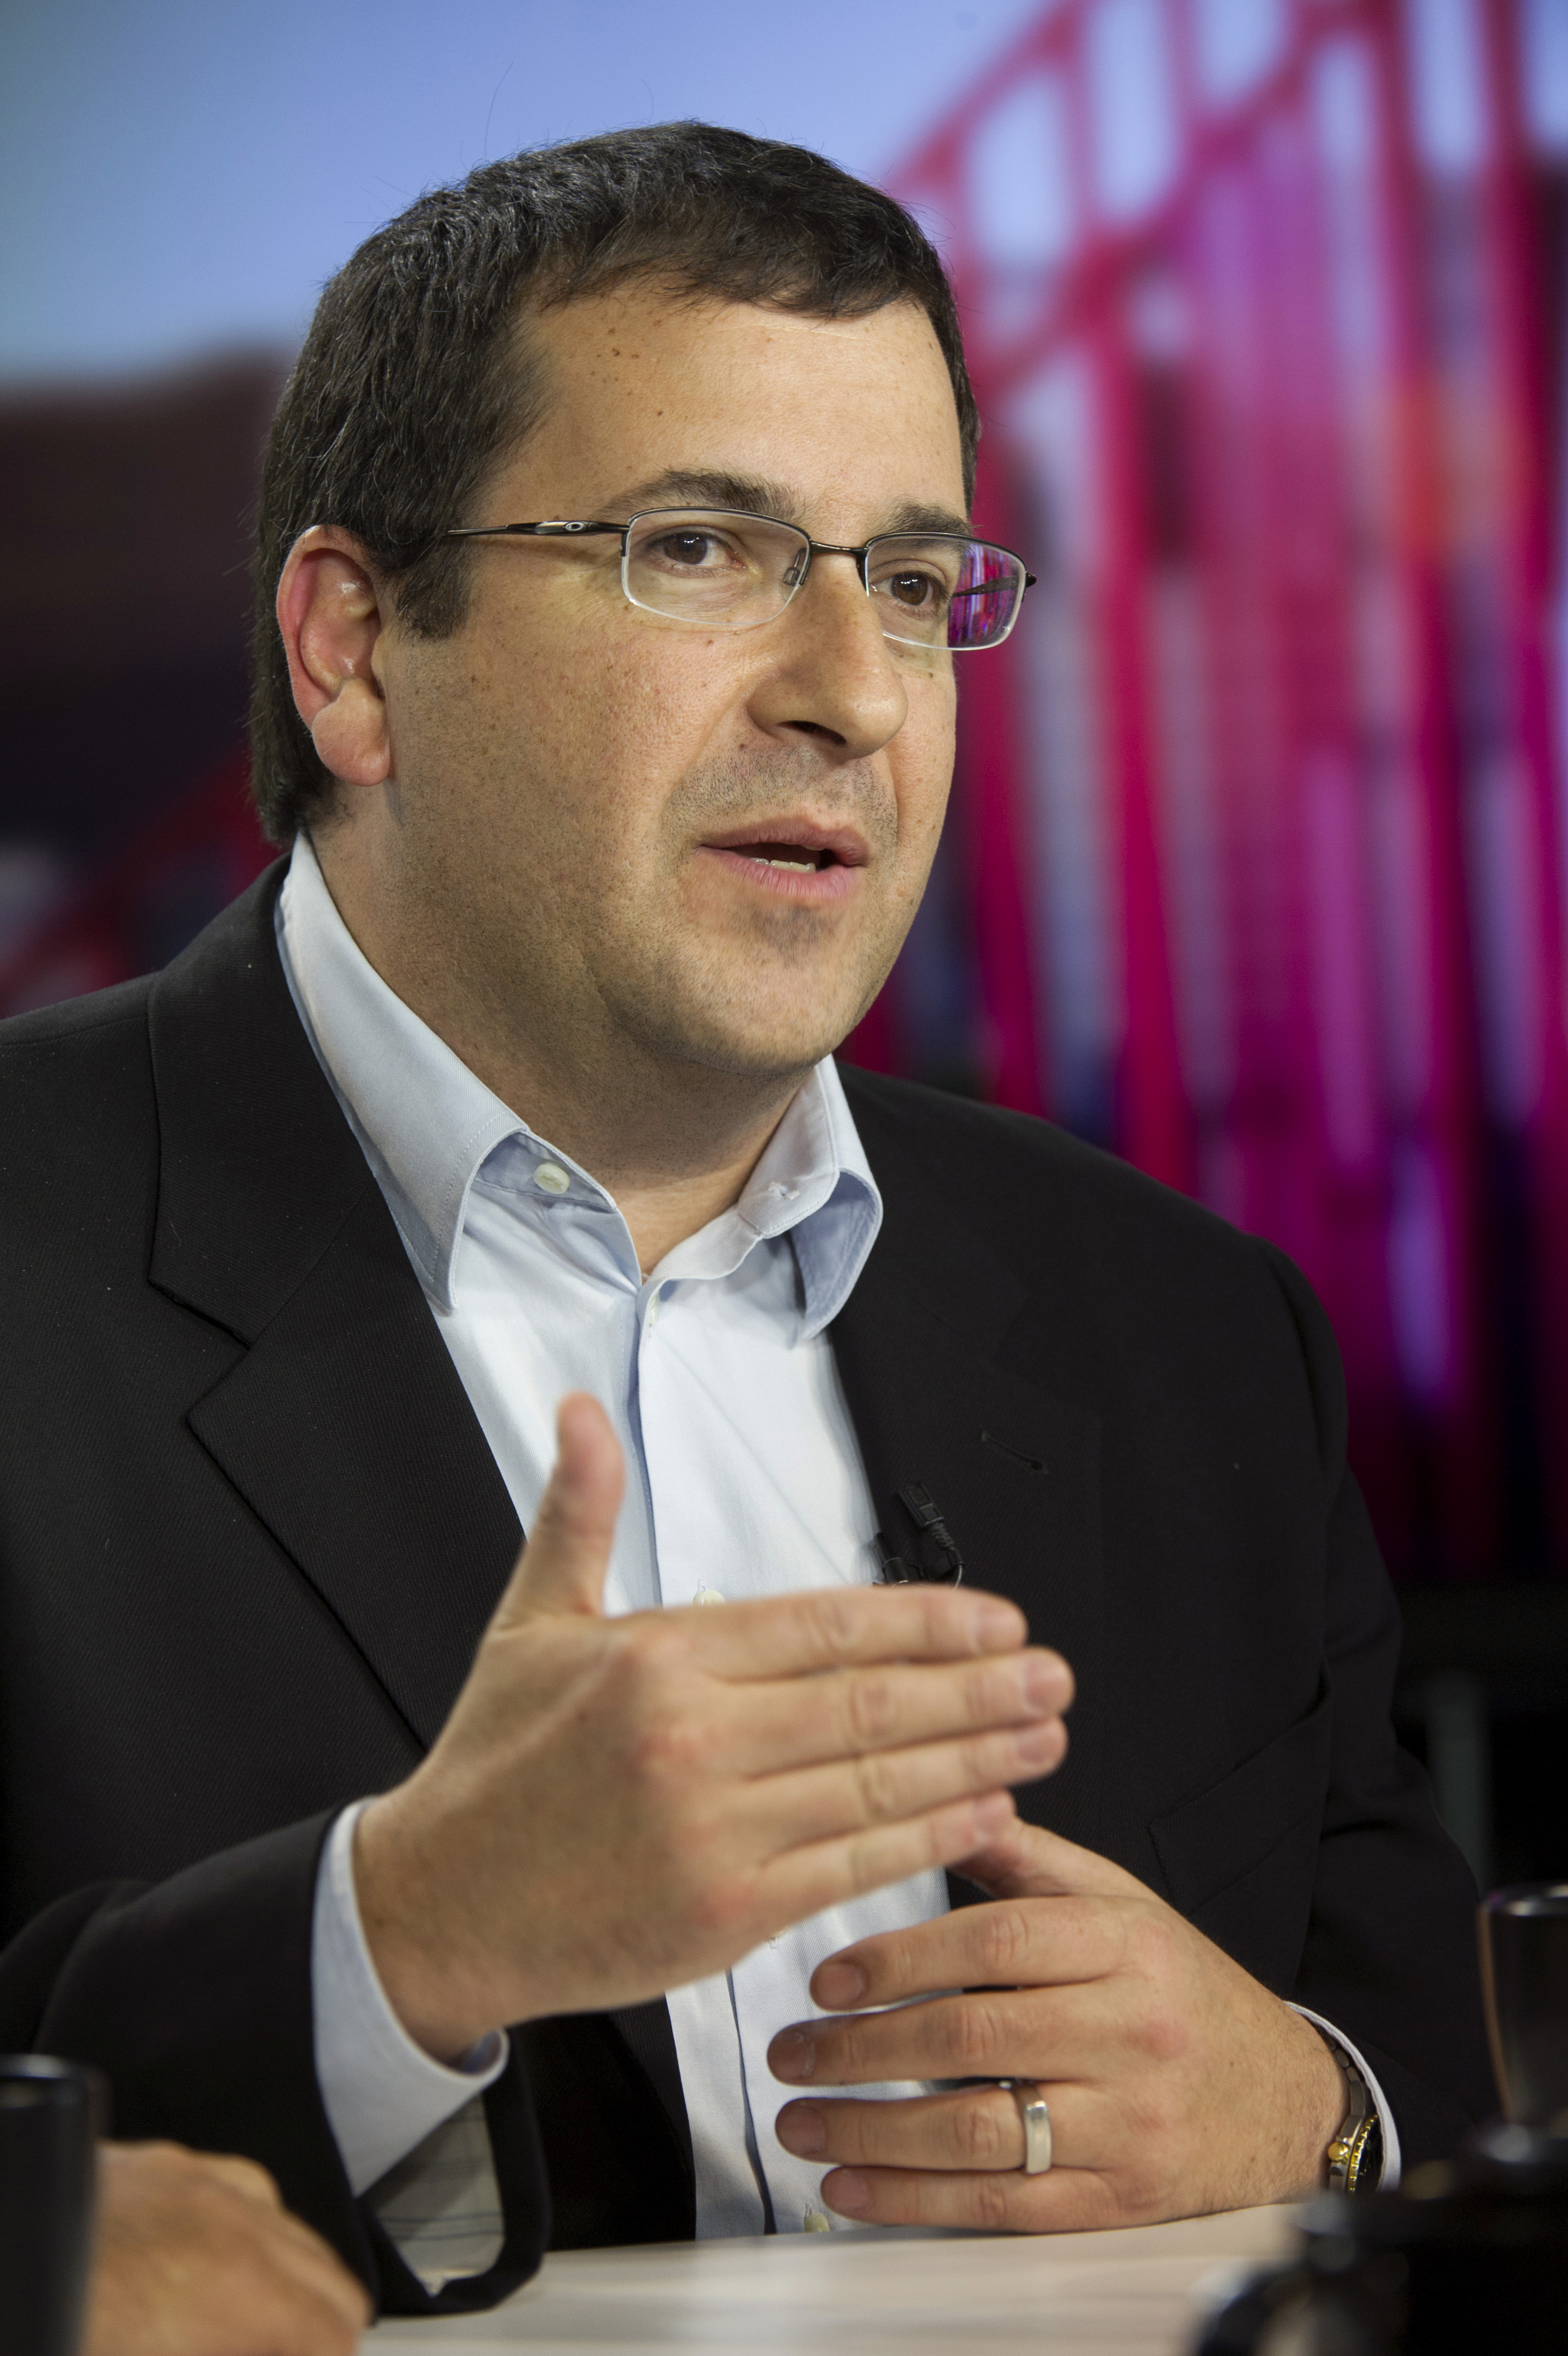 David  Dave  Goldberg, chief executive officer of SurveyMonkey.com LLC, speaks during a Bloomberg West Television interview in San Francisco, on May 27, 2014.